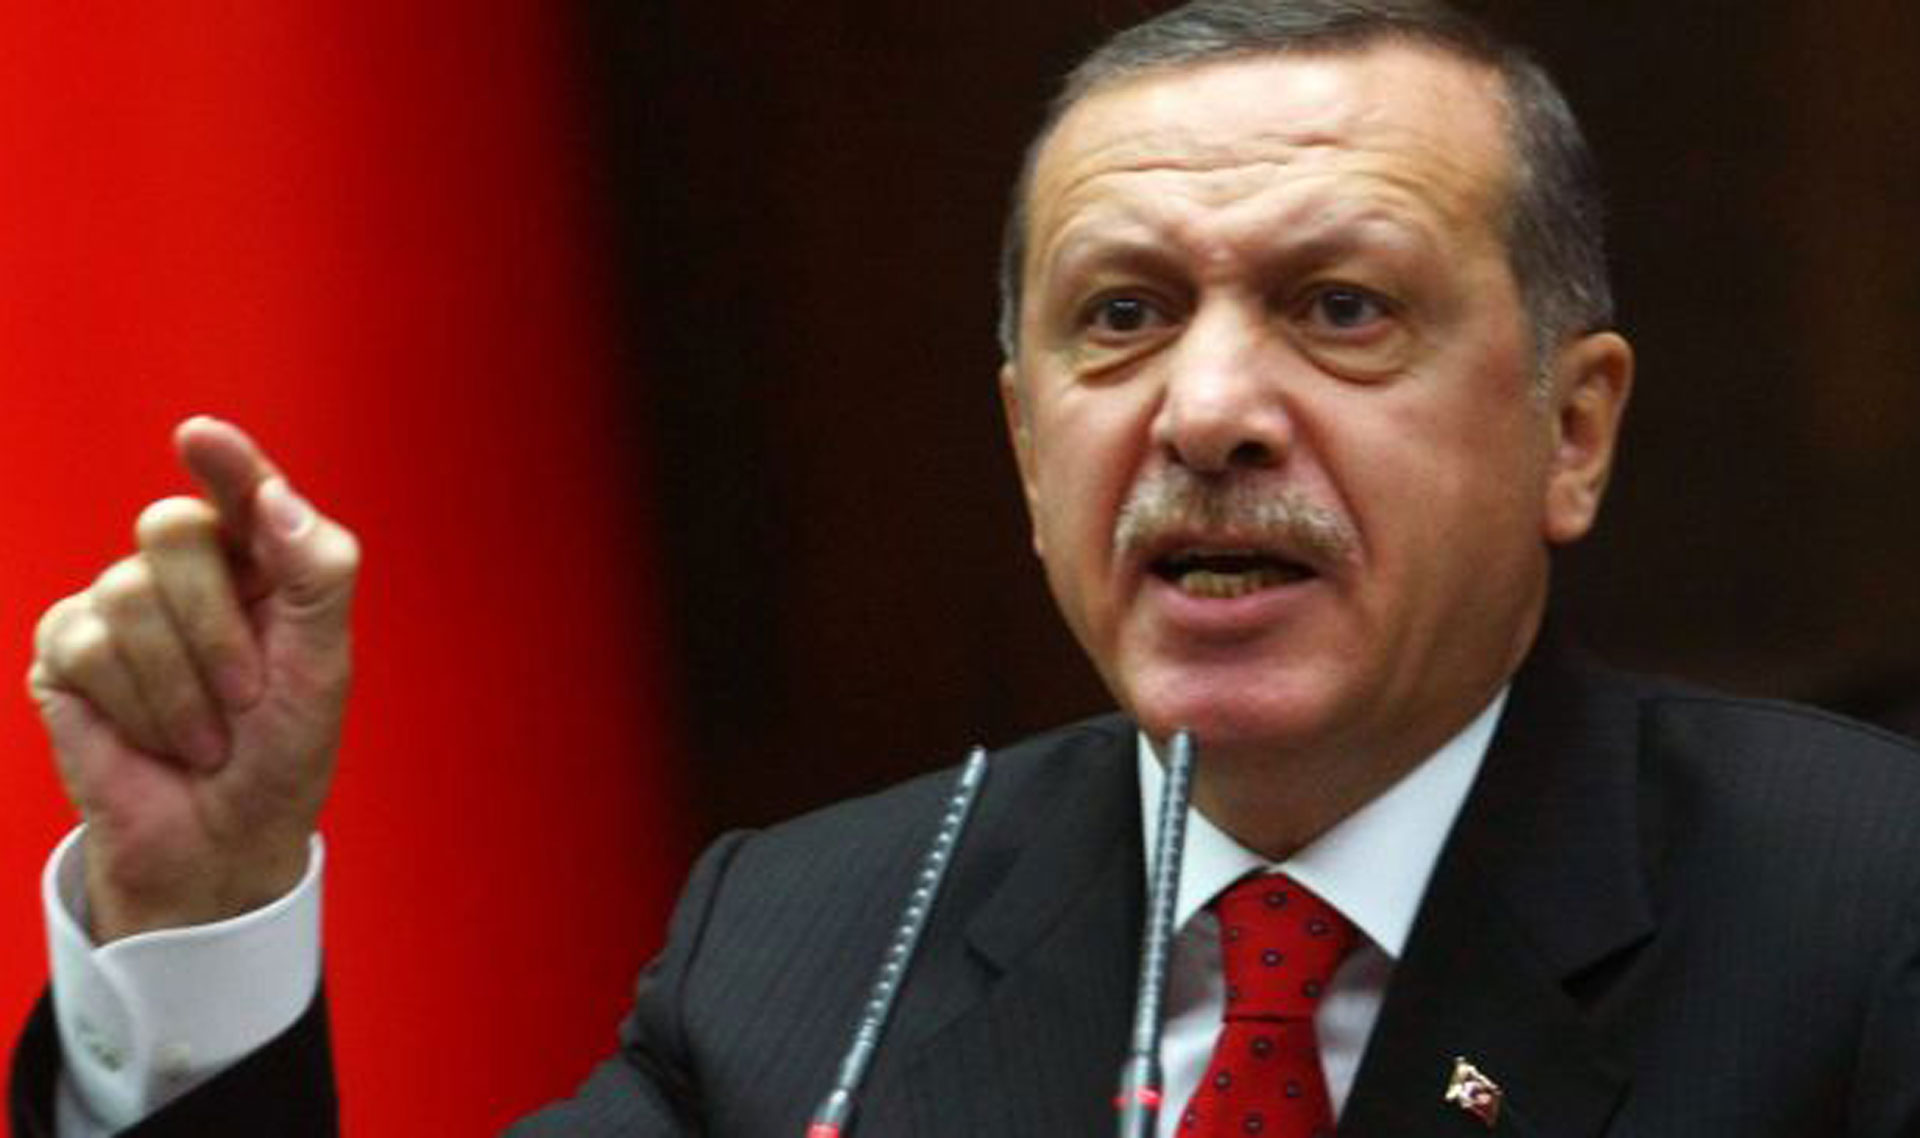 Erdogan slams int'l inaction over Syria conflict